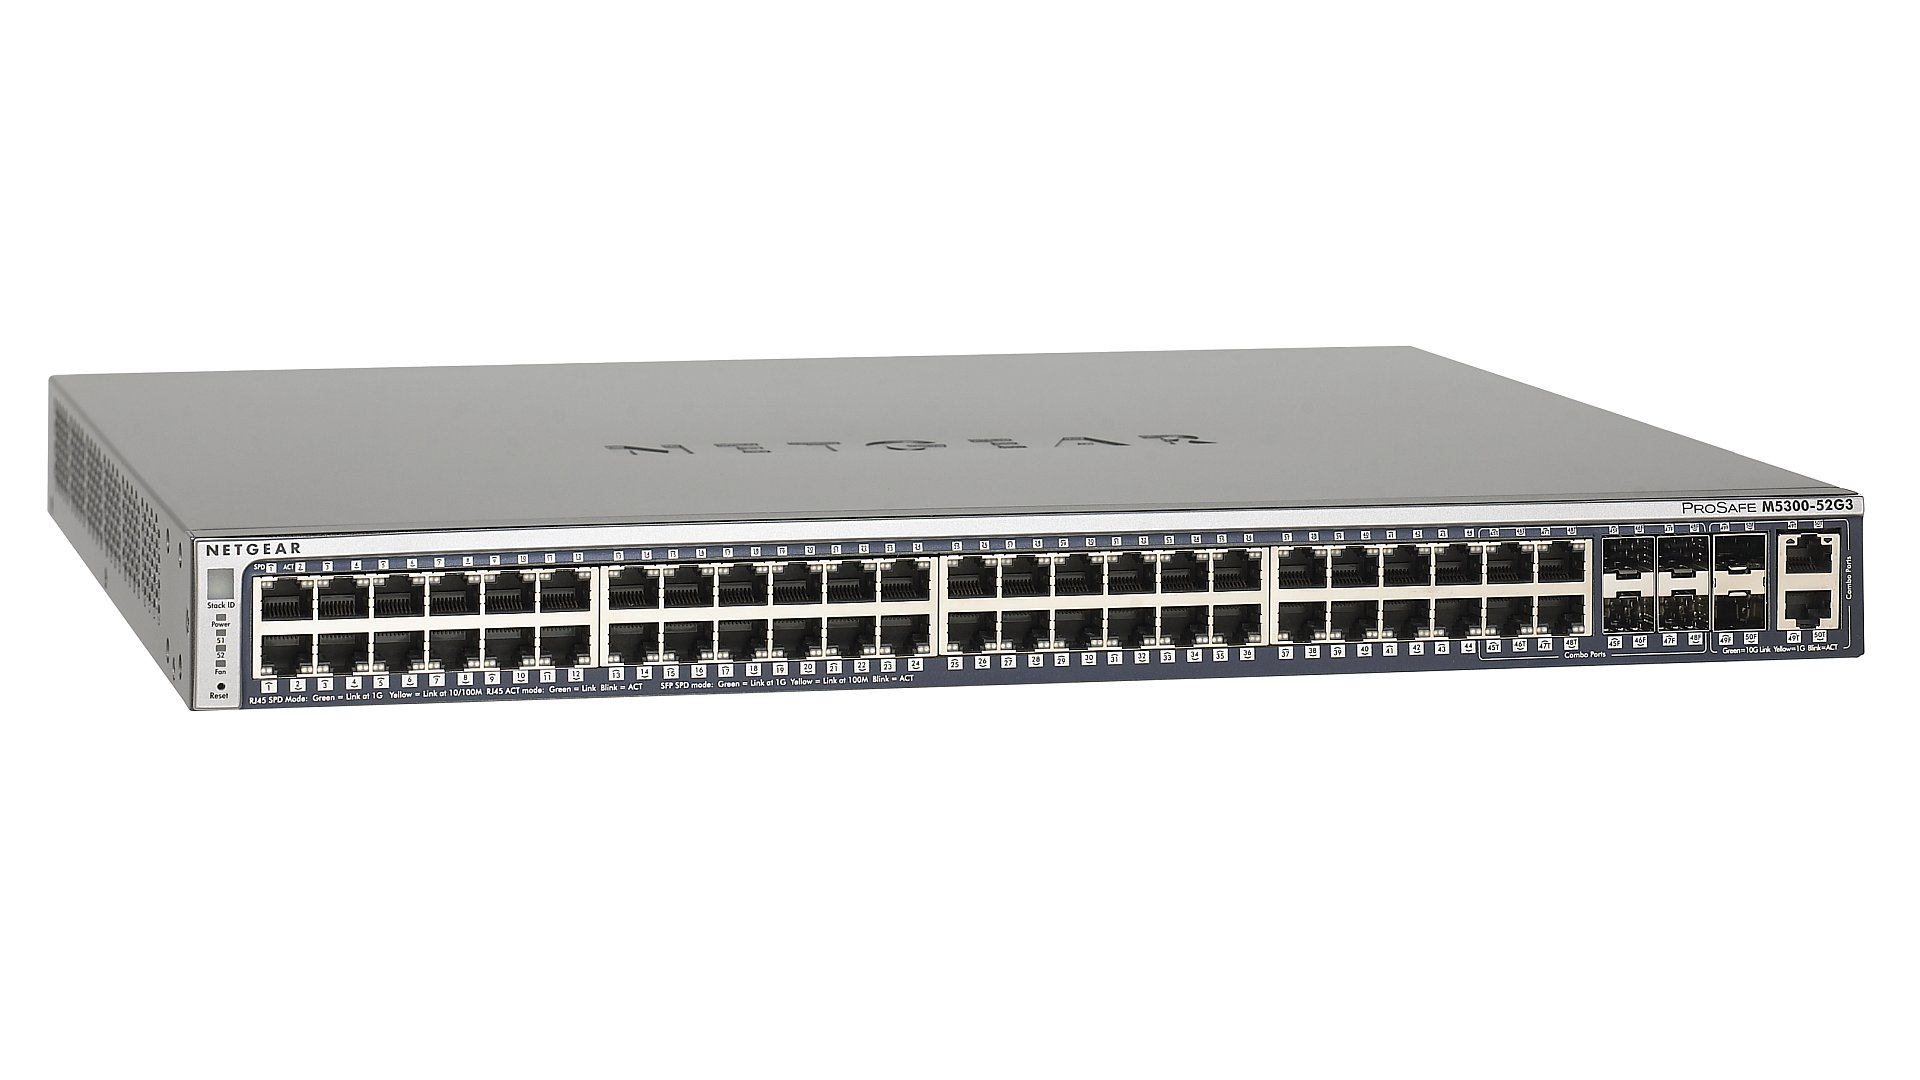 Netgear 5300 Series Switches